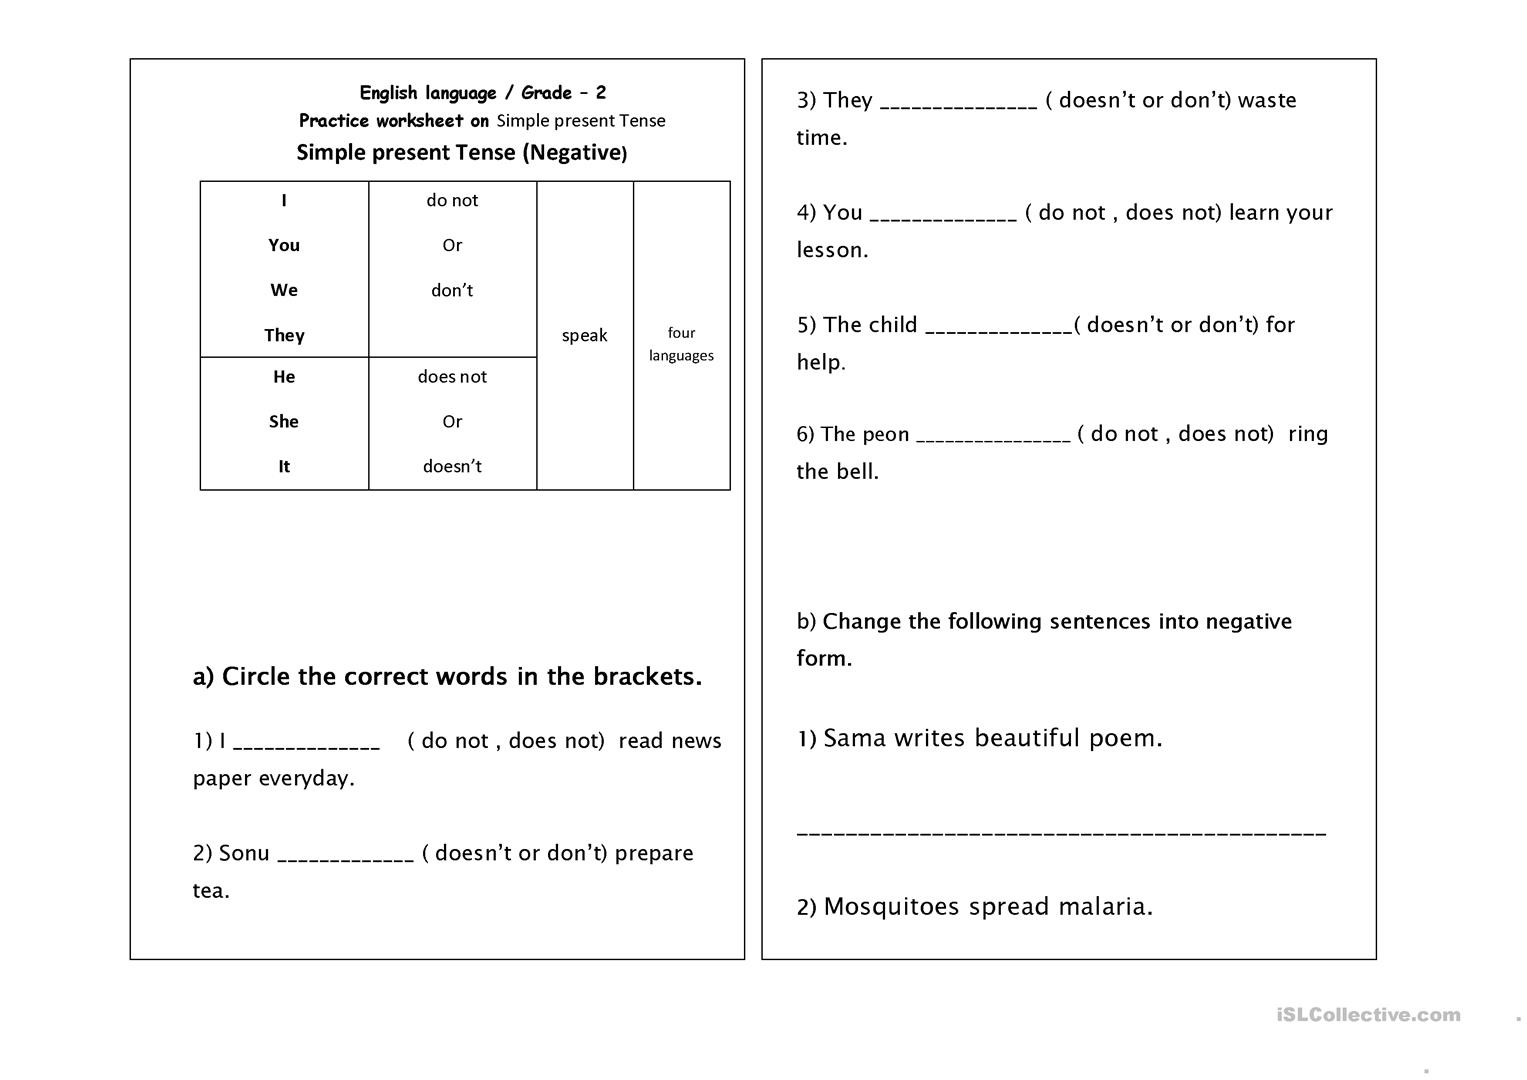 Simple Present Negative Form Worksheet